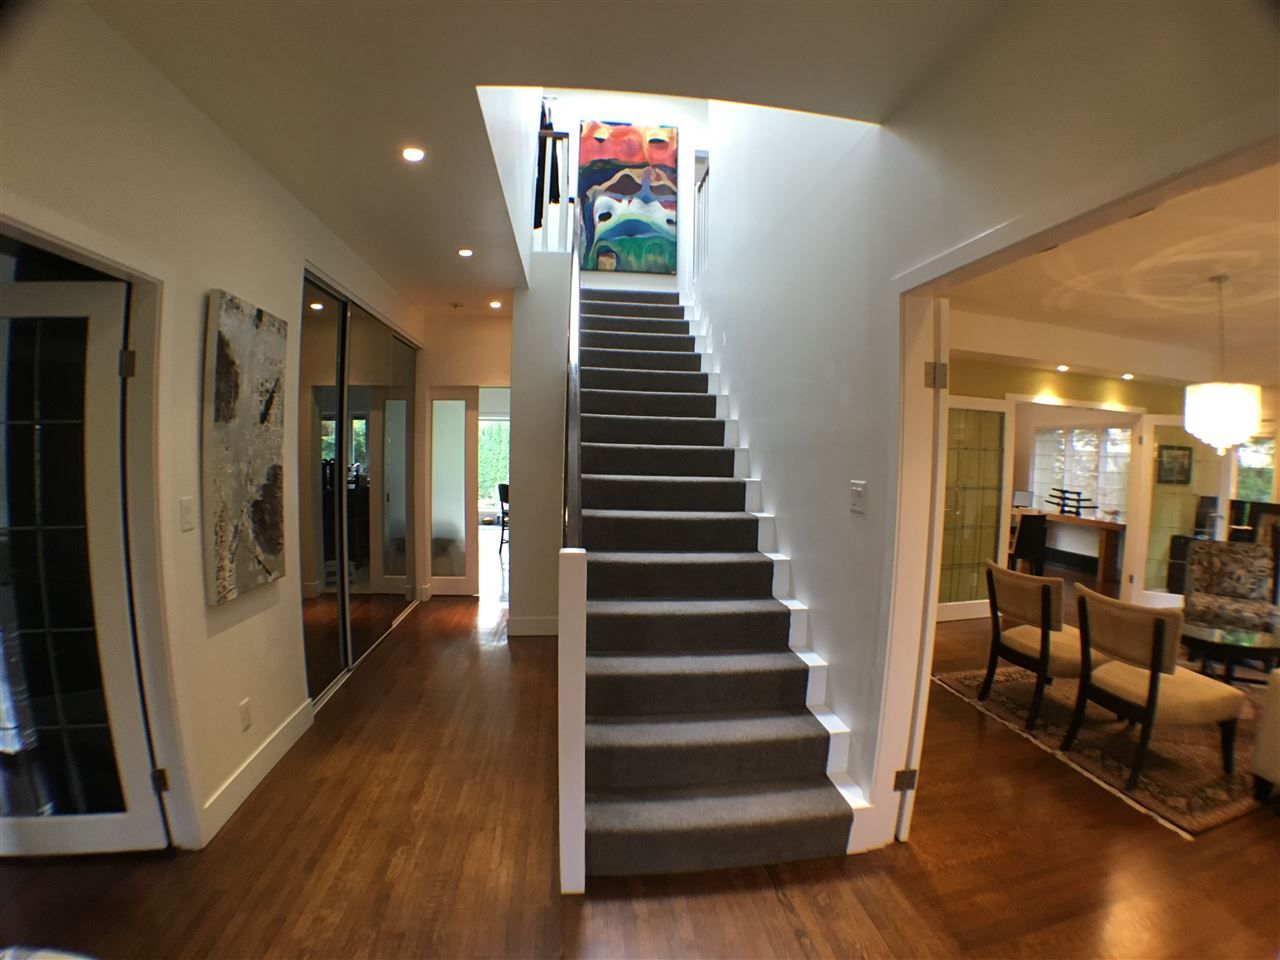 Photo 6: Photos: 1268 NANTON Avenue in Vancouver: Shaughnessy House for sale (Vancouver West)  : MLS®# R2209391